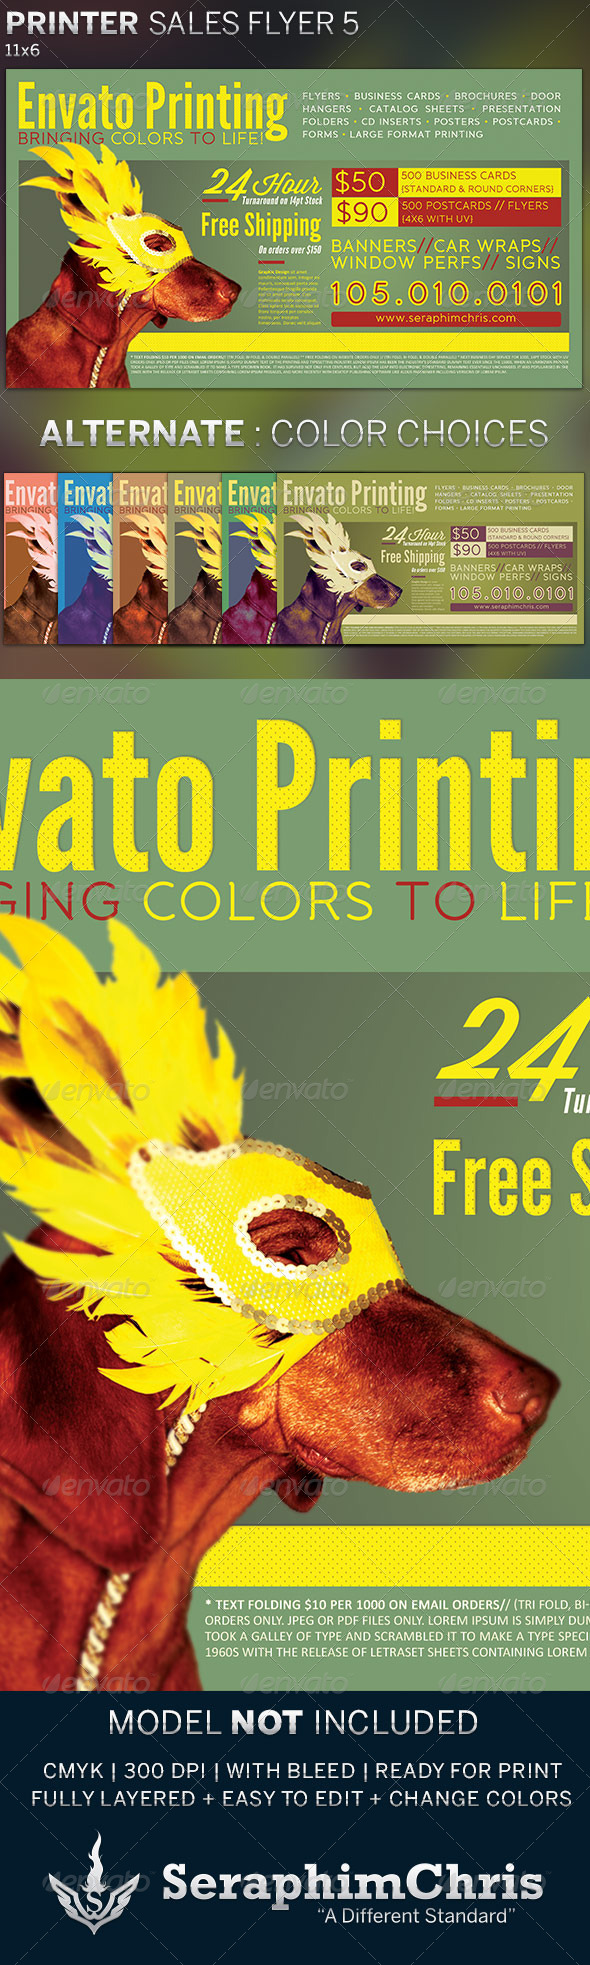 Printer Sales Flyer Template 5